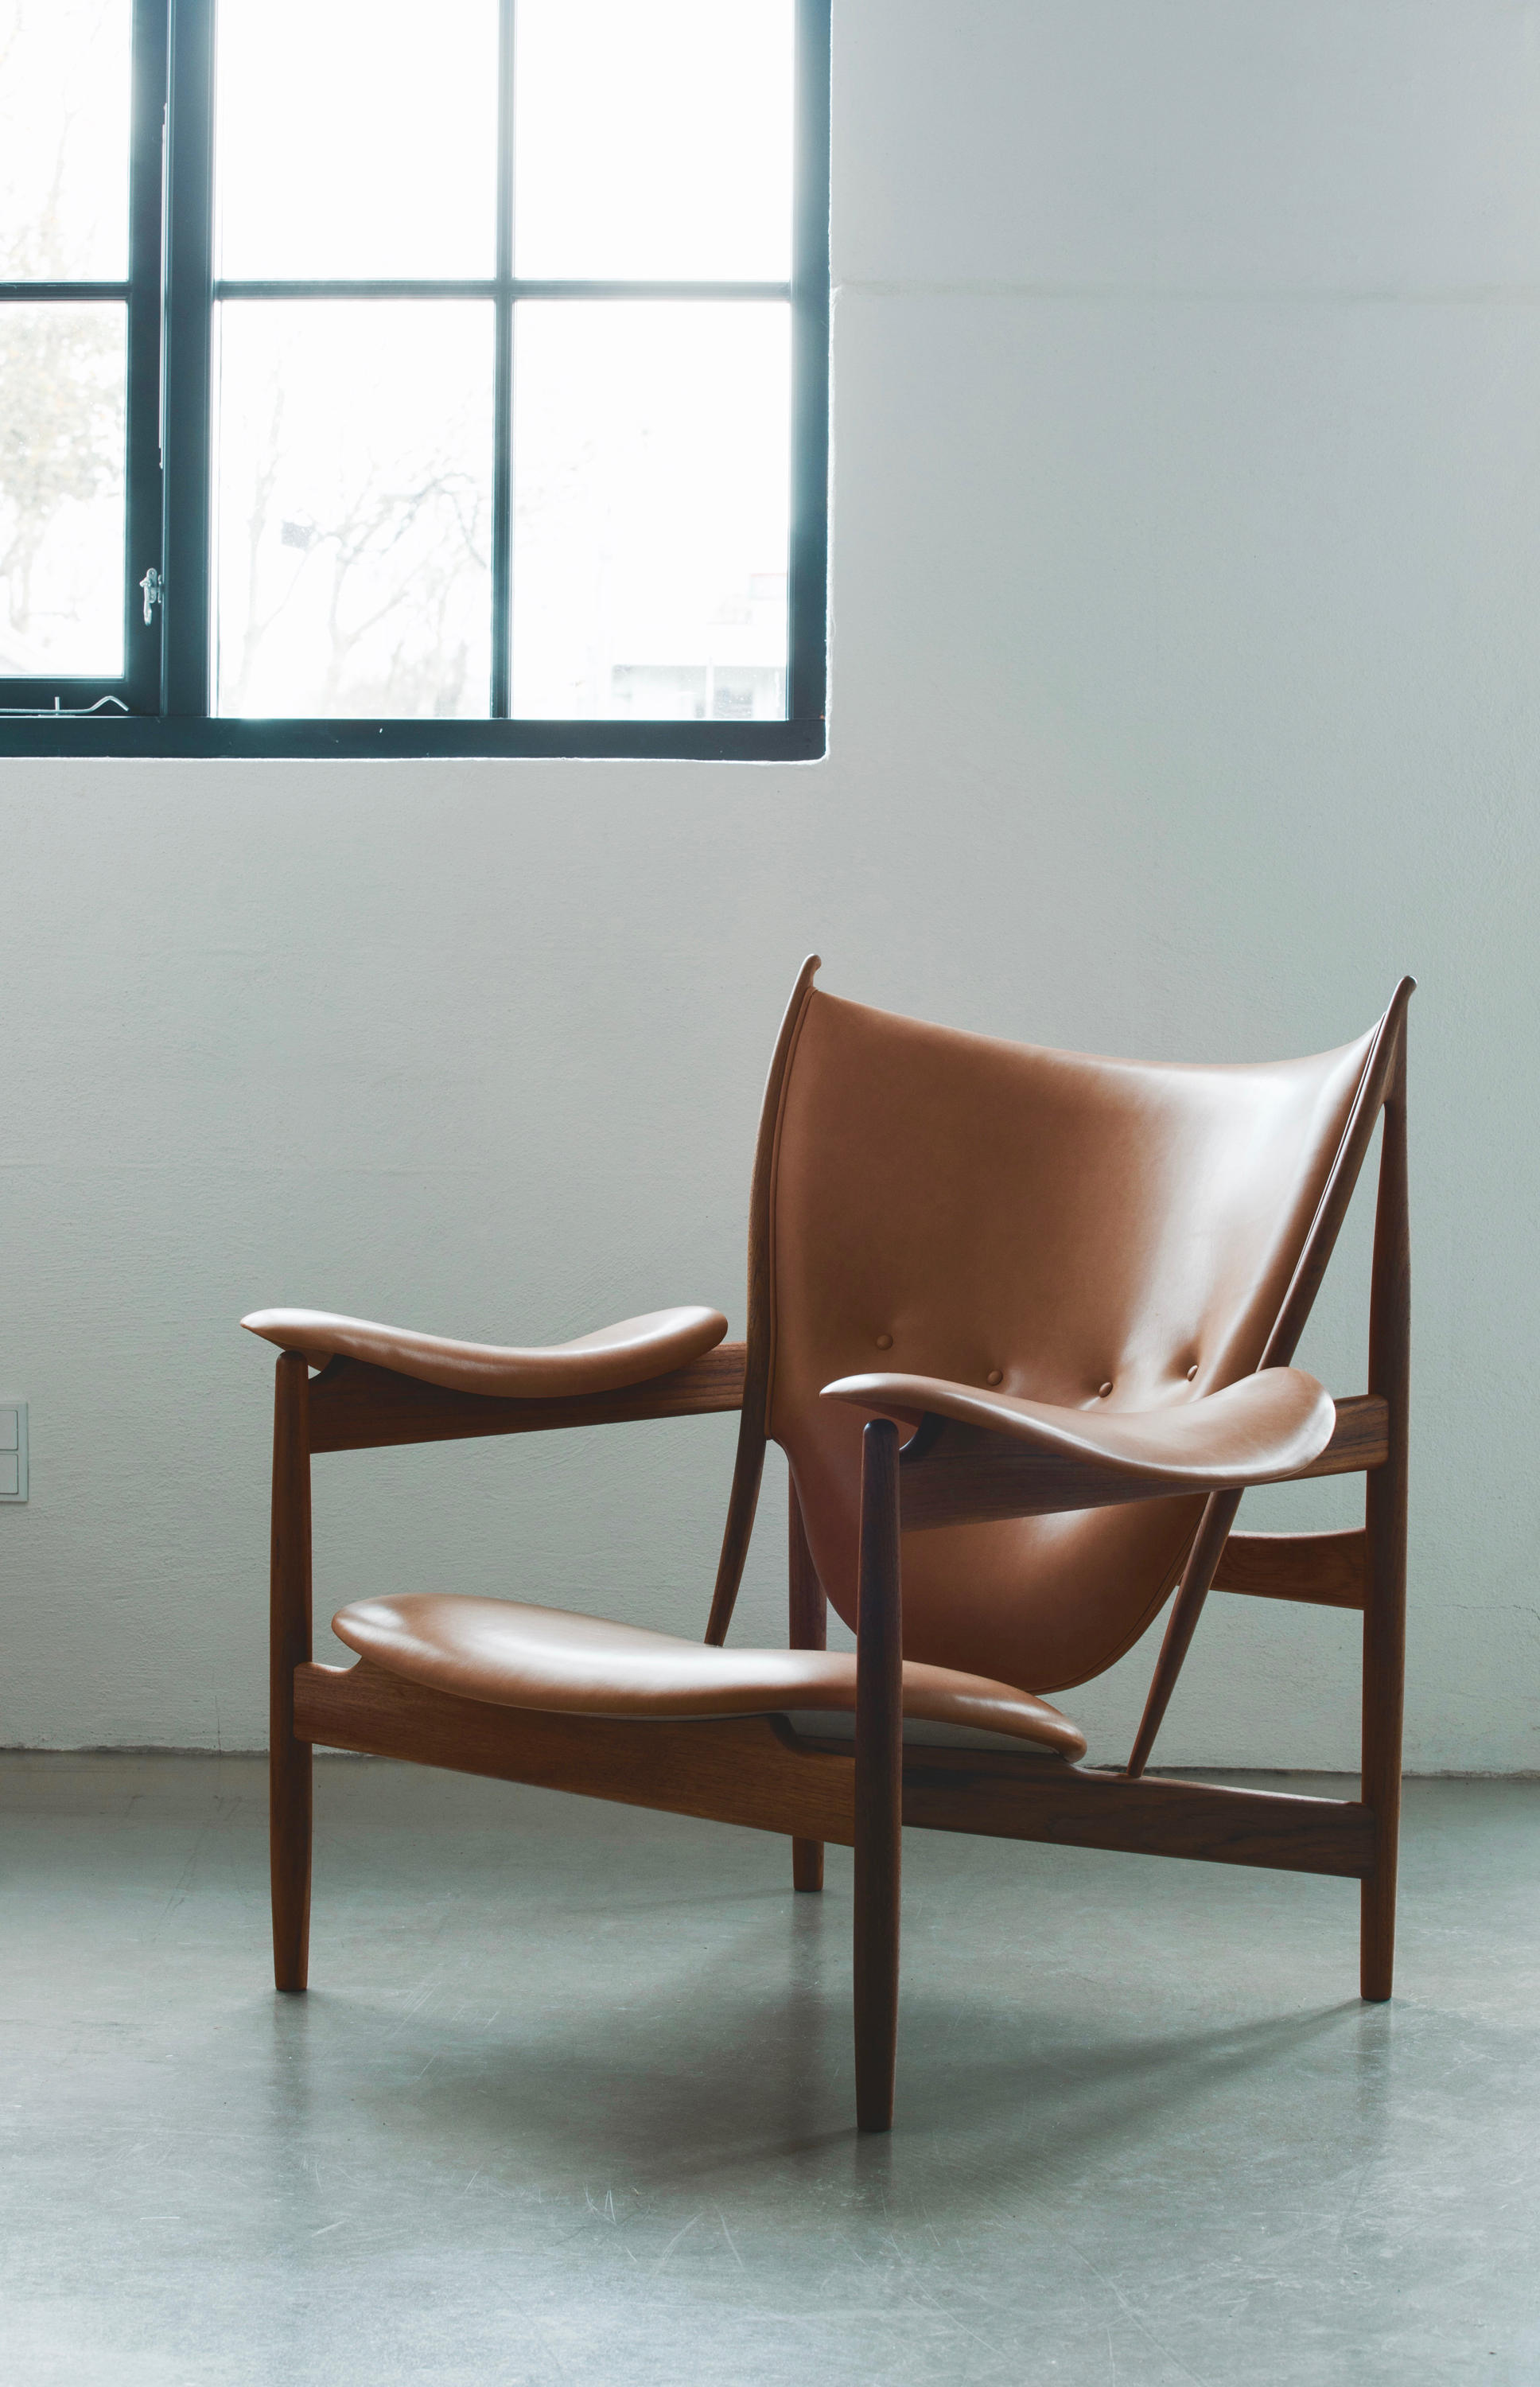 Ordinaire ... Chieftain Chair By House Of Finn Juhl   Onecollection